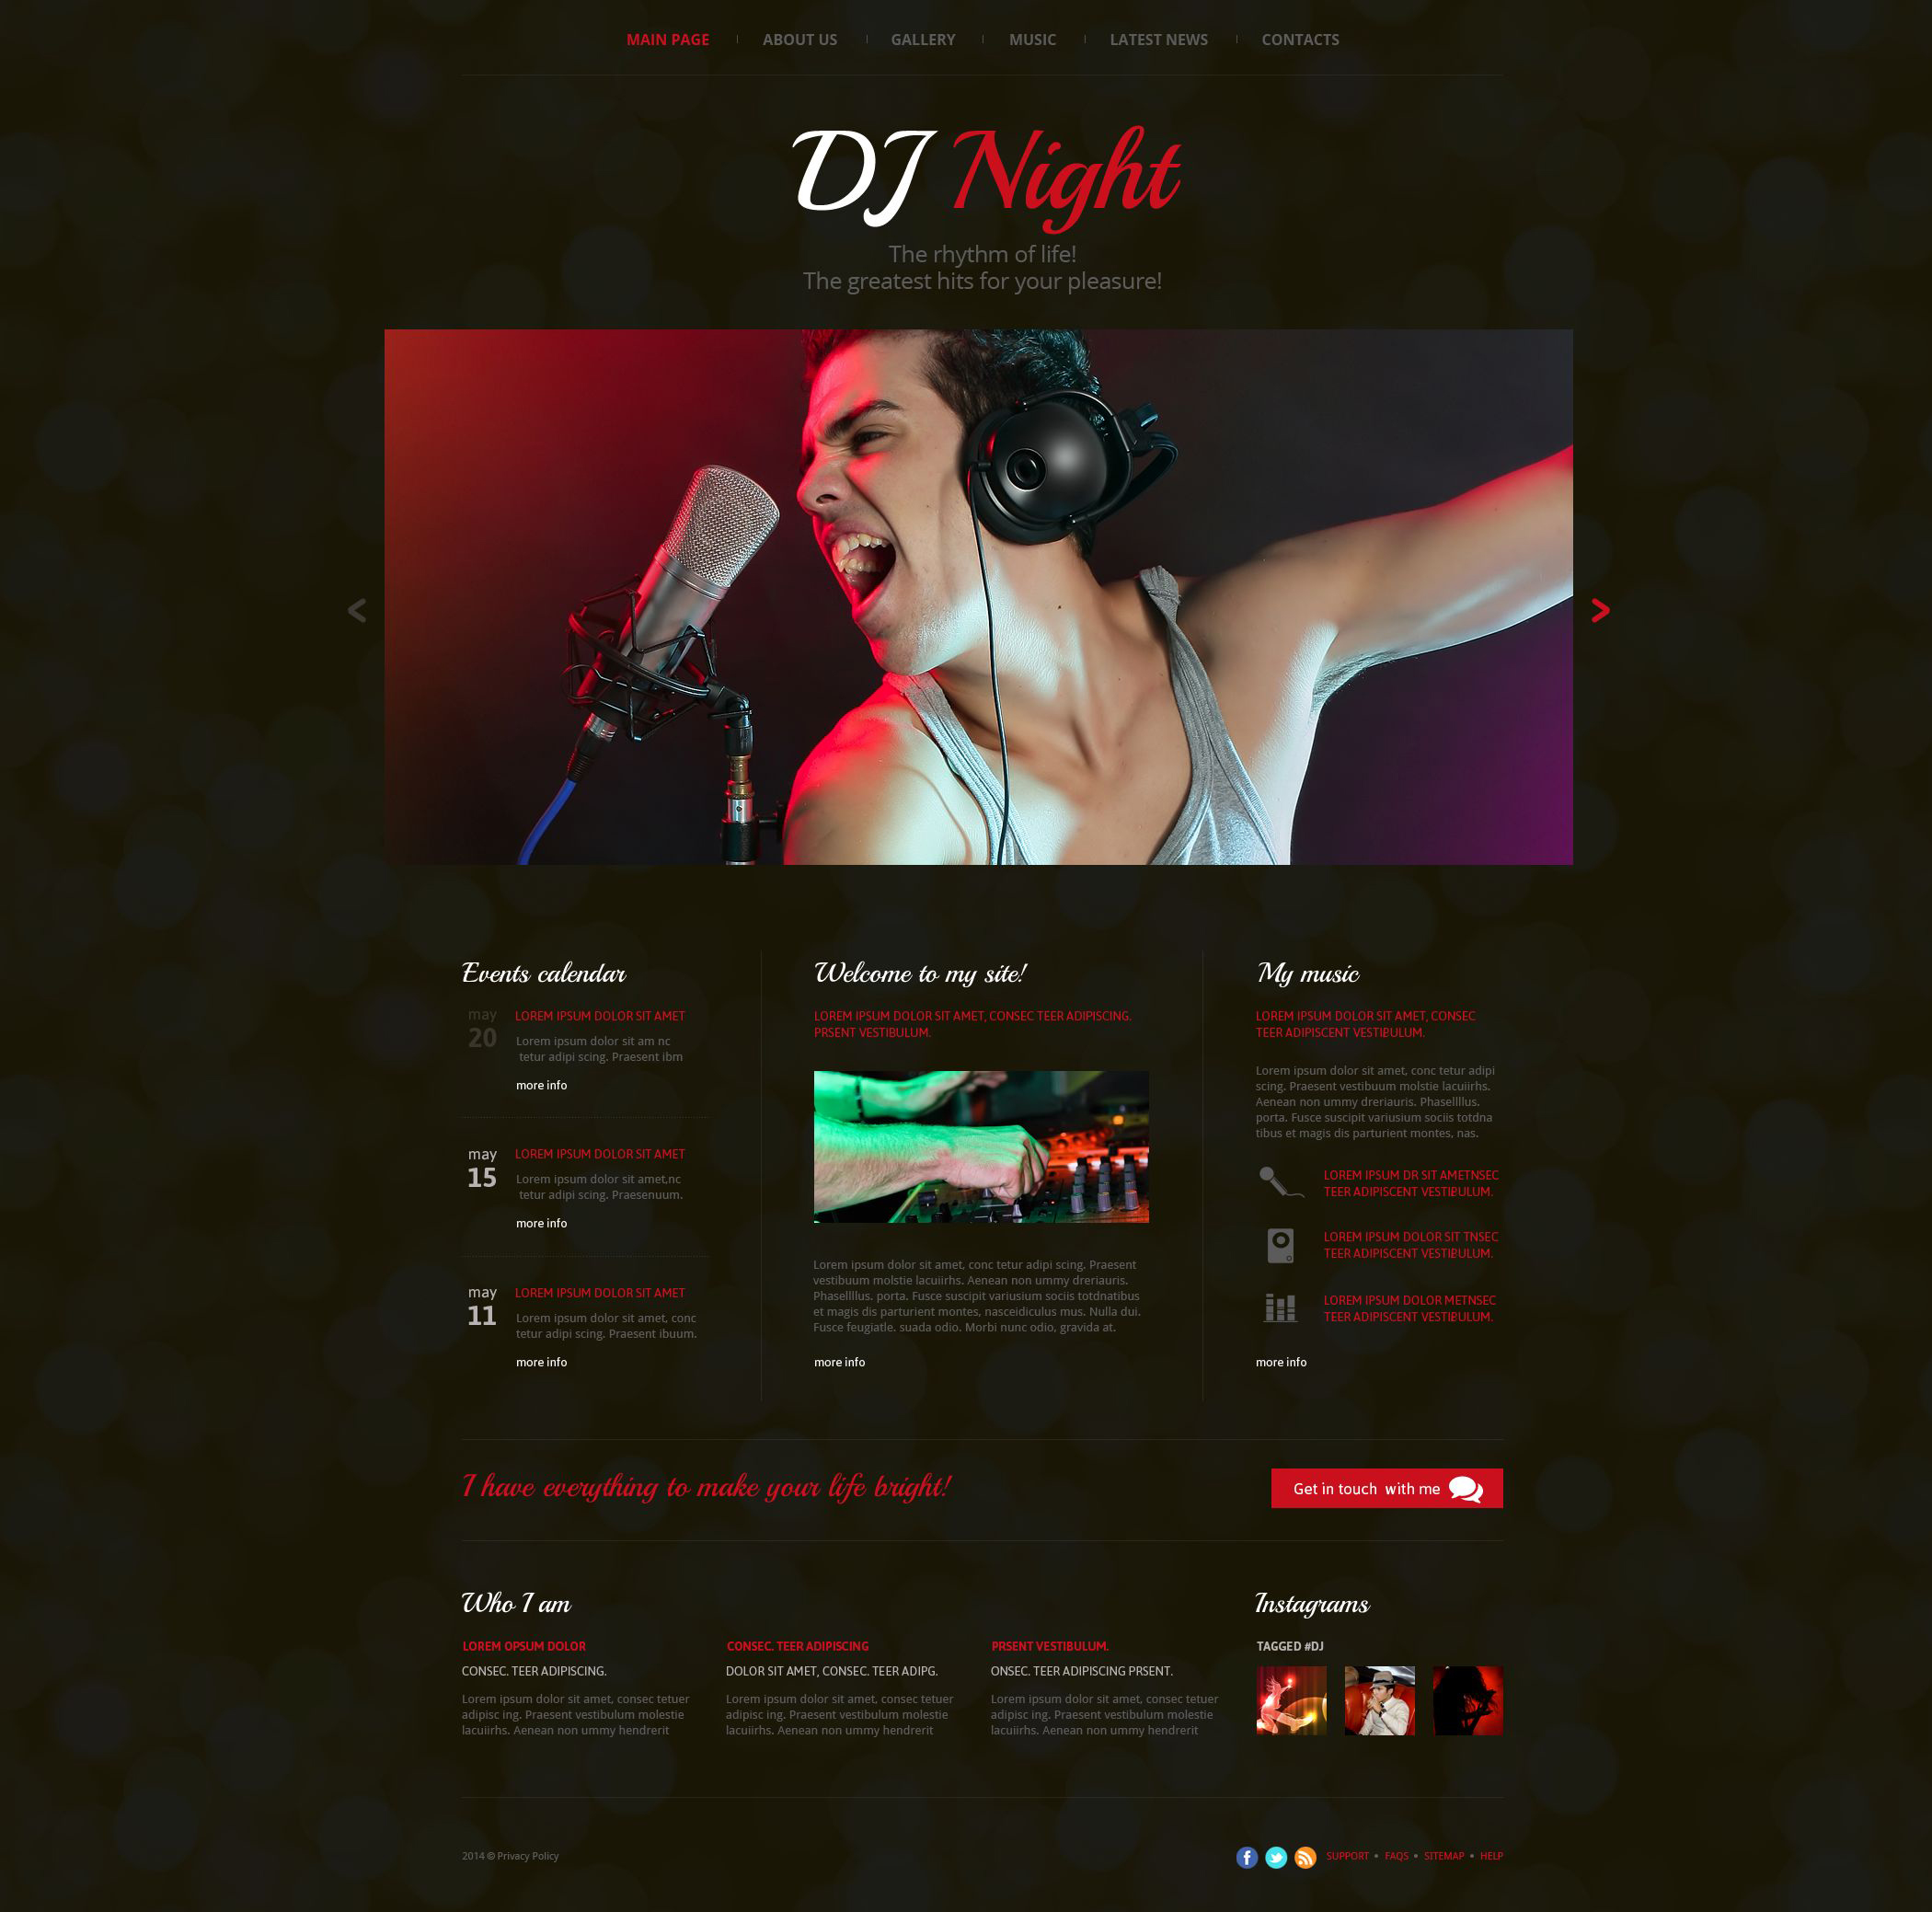 The DJ Night Personal Page Responsive Javascript Animated Design 52980, one of the best website templates of its kind (entertainment, most popular), also known as DJ night personal page website template, music website template, deejays website template, biography website template, remixes website template, video website template, clips website template, MP3 audio website template, tour events website template, beats website template, disks website template, songs website template, tunes website template, rhythms website template, gallery website template, photos website template, pictures website template, party and related with DJ night personal page, music, deejays, biography, remixes, video, clips, MP3 audio, tour events, beats, disks, songs, tunes, rhythms, gallery, photos, pictures, party, etc.